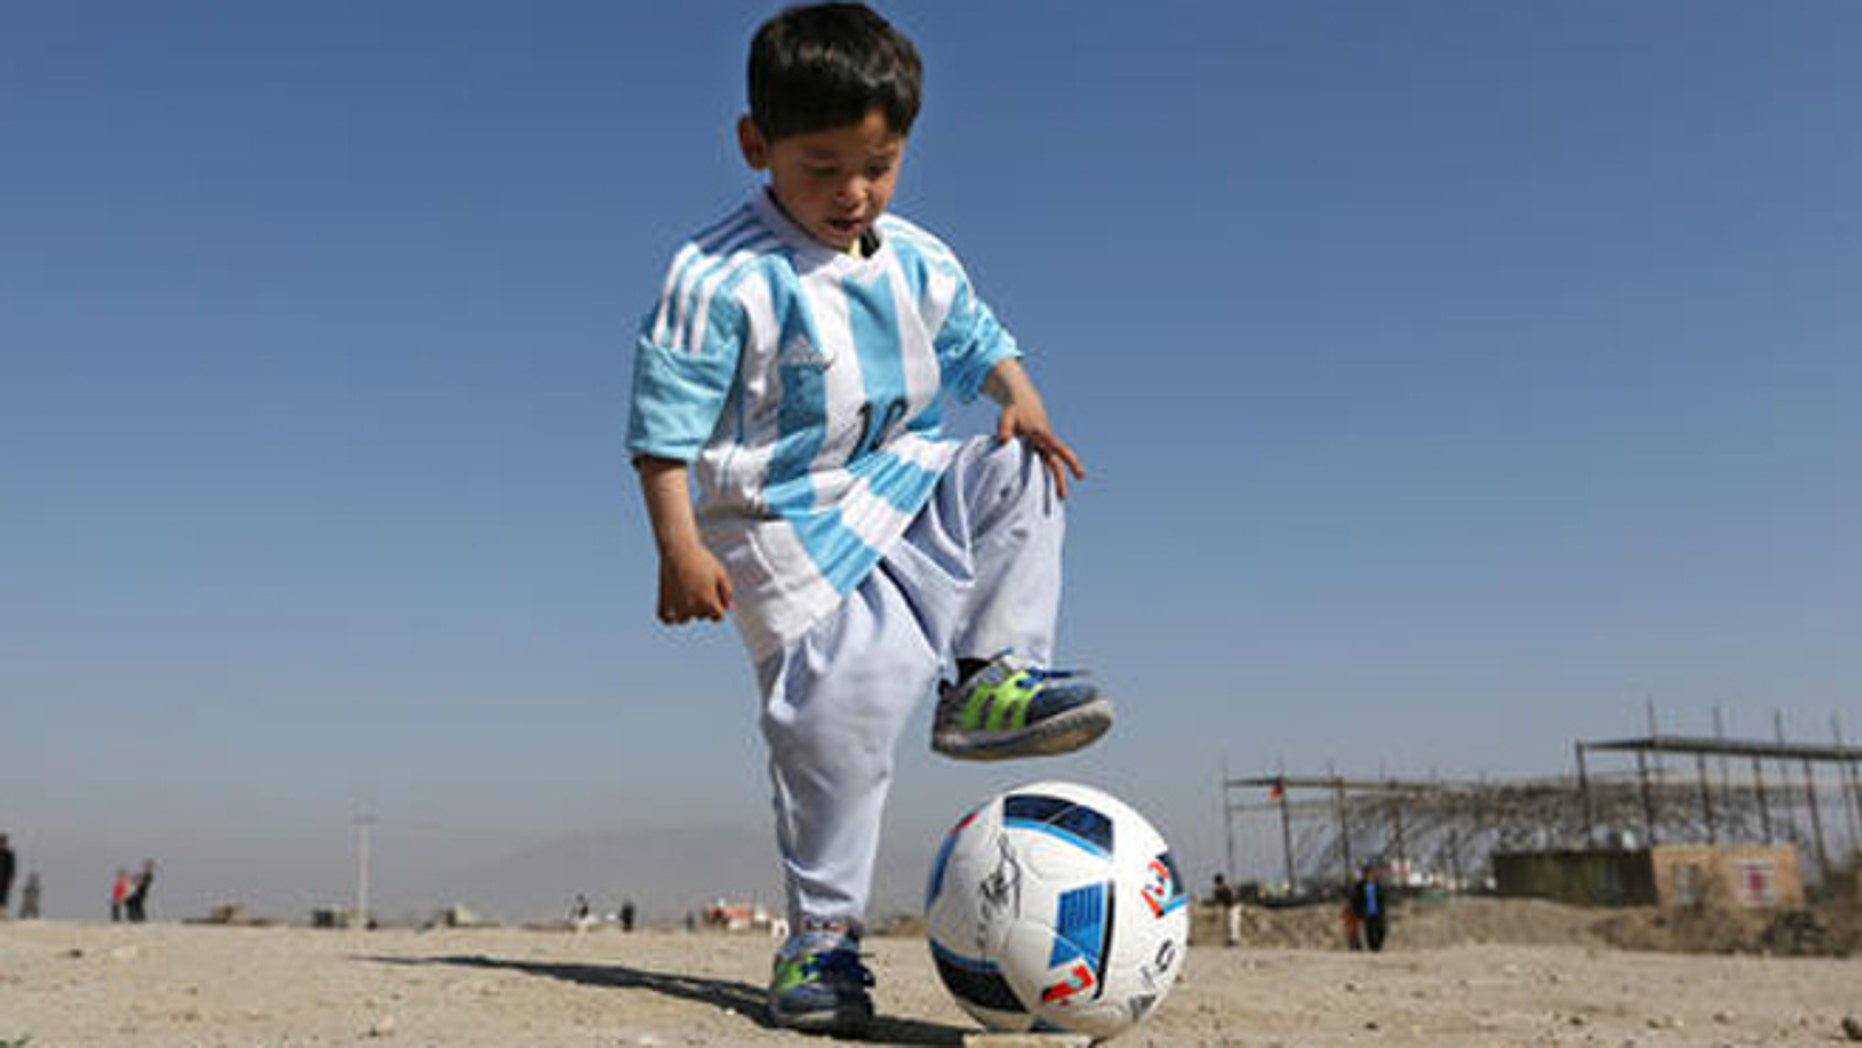 Murtaza Ahmadi, a five-year-old Afghan Lionel Messi fan plays with a soccer ball during a photo opportunity as he wears a shirt signed by Messi, in Kabul, Afghanistan, Friday, Feb. 26, 2016.  Mohammad Arif Ahmadi, the father of the boy who was pictured wearing a homemade Argentina shirt with No. 10 on the back, said Friday they want to thank Messi, a UNICEF goodwill ambassador, in person.(AP Photo/Rahmat Gul)